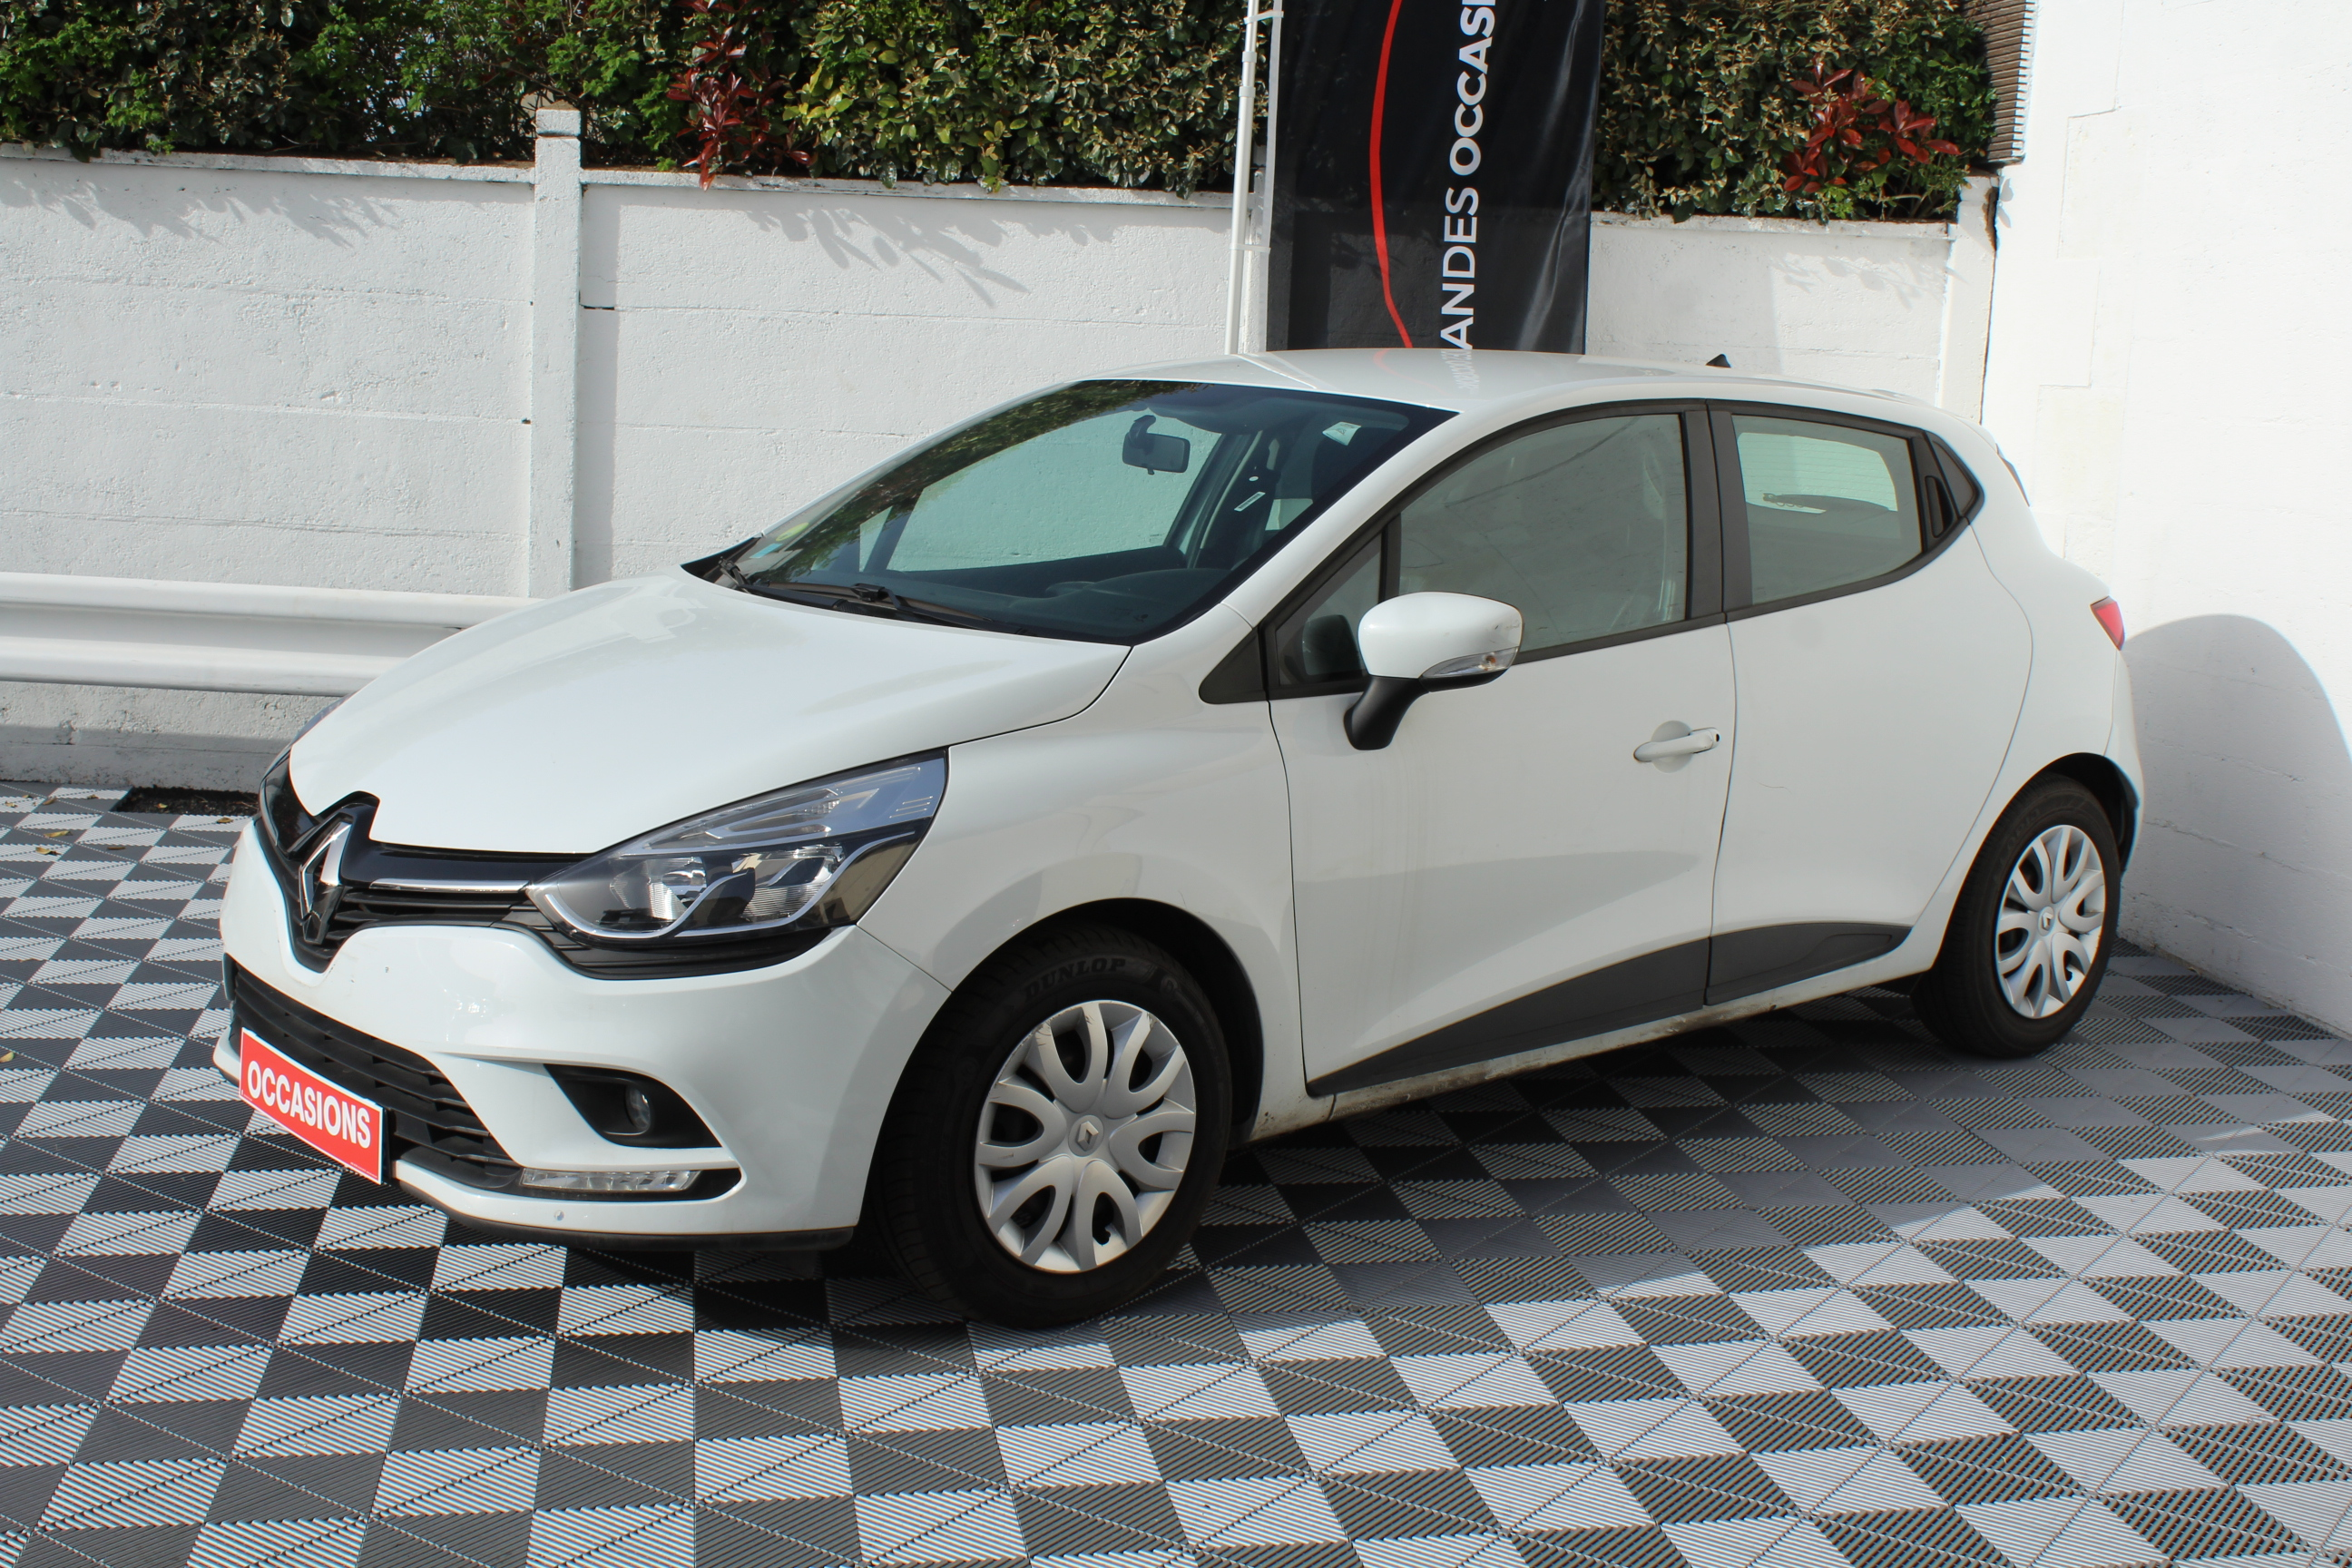 RENAULT CLIO IV SOCIETE 2016 à 7900 € - Photo n°1